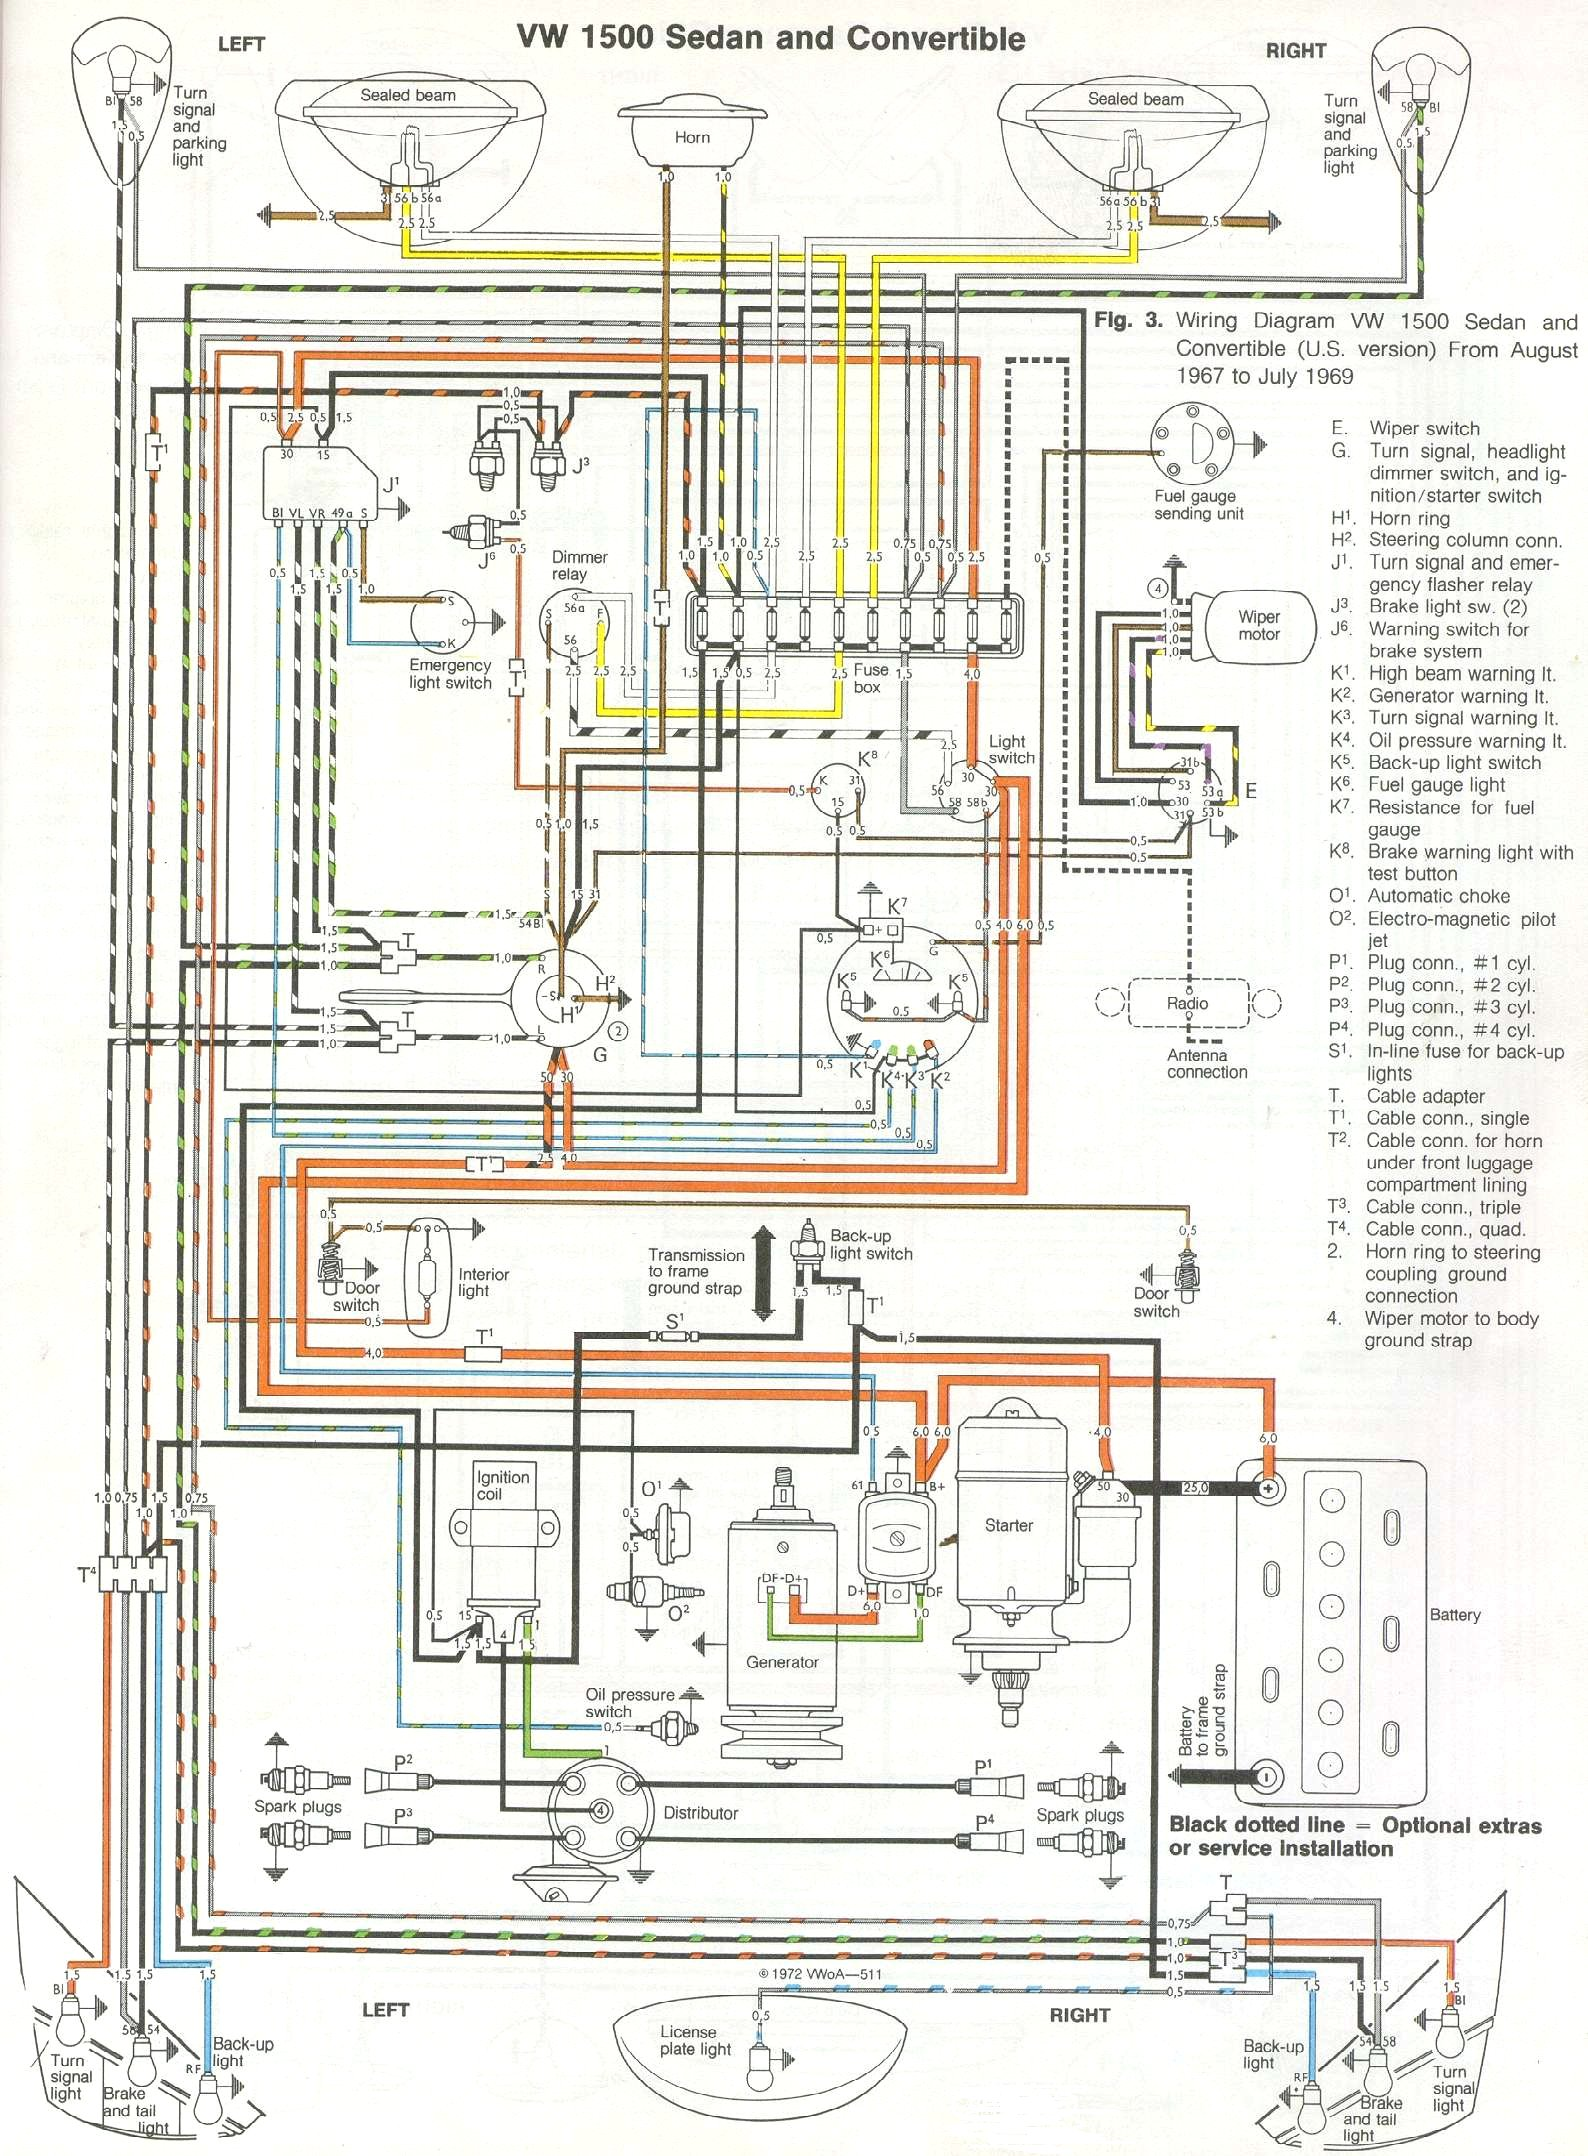 wiring diagram for air cooled vw 5 em freakdrive de \u20221969 71 beetle wiring diagram thegoldenbug com rh thegoldenbug com dune buggy light wiring diagrams dune